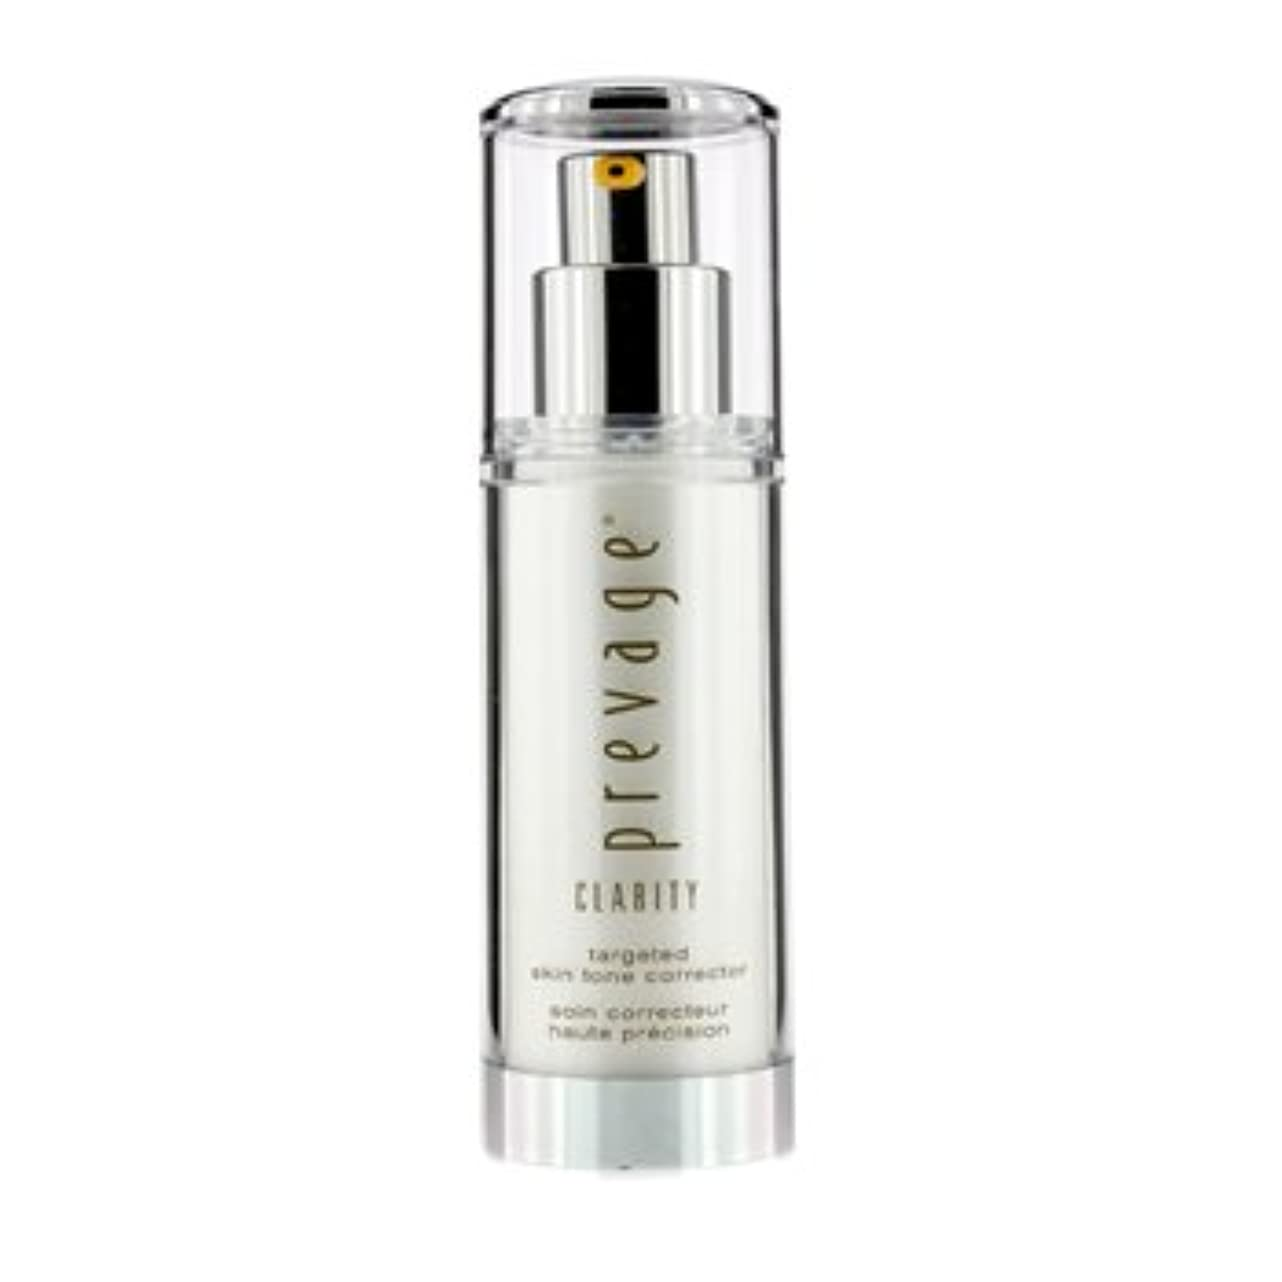 失望させる神社孤独[Prevage] Clarity Targeted Skin Tone Corrector 30ml/1oz